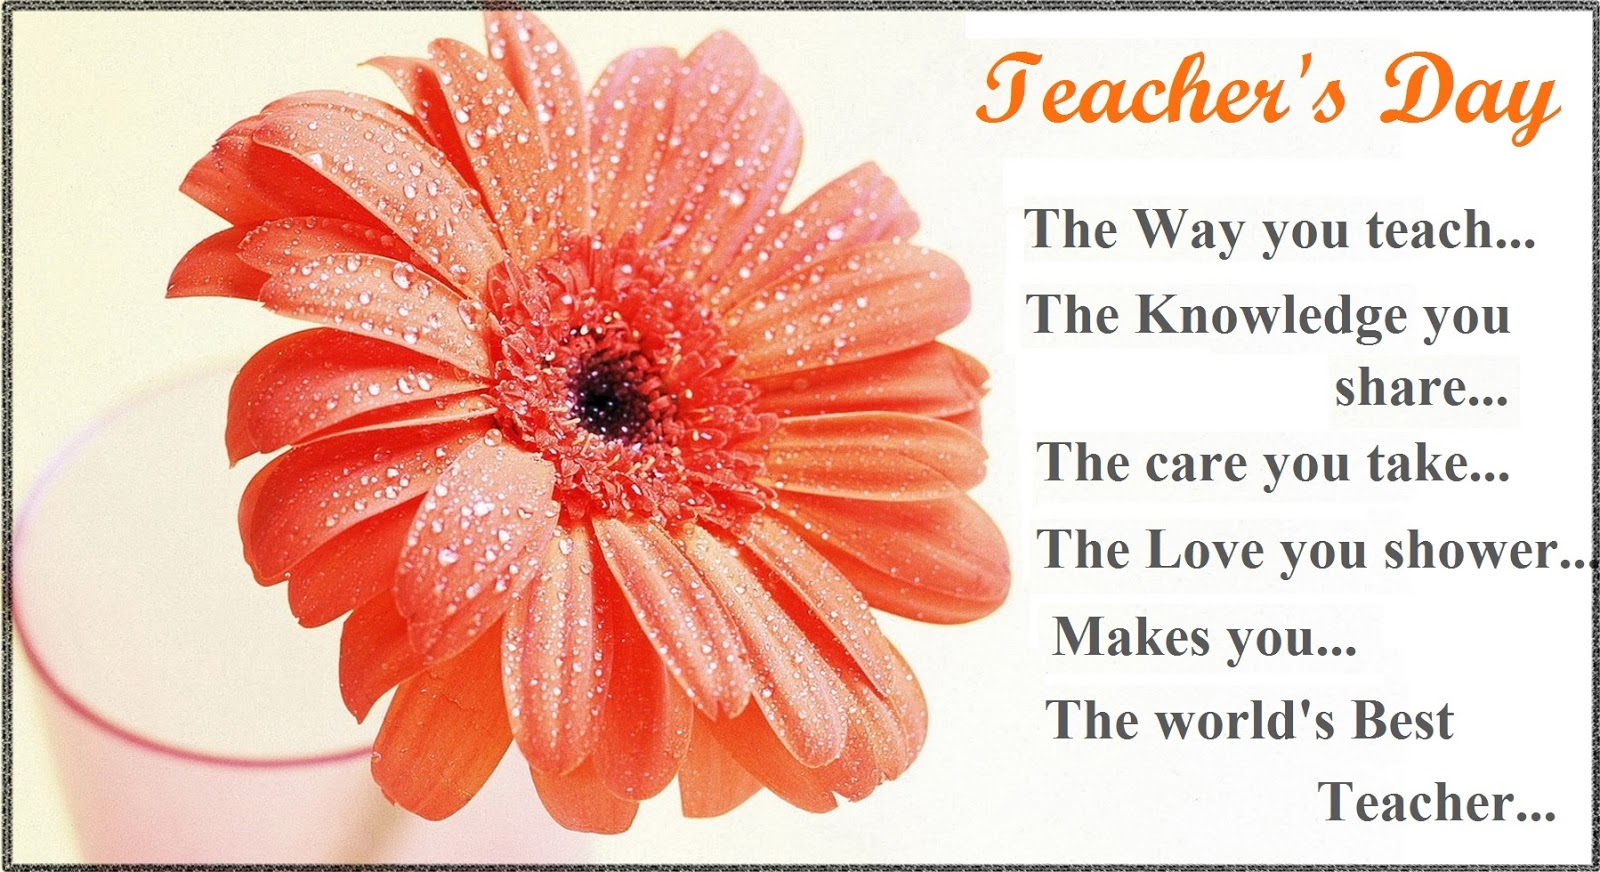 th world teacher s day short speech essay for kids happy%2bteachers%2bday%2bhd%2b %2b %2b01